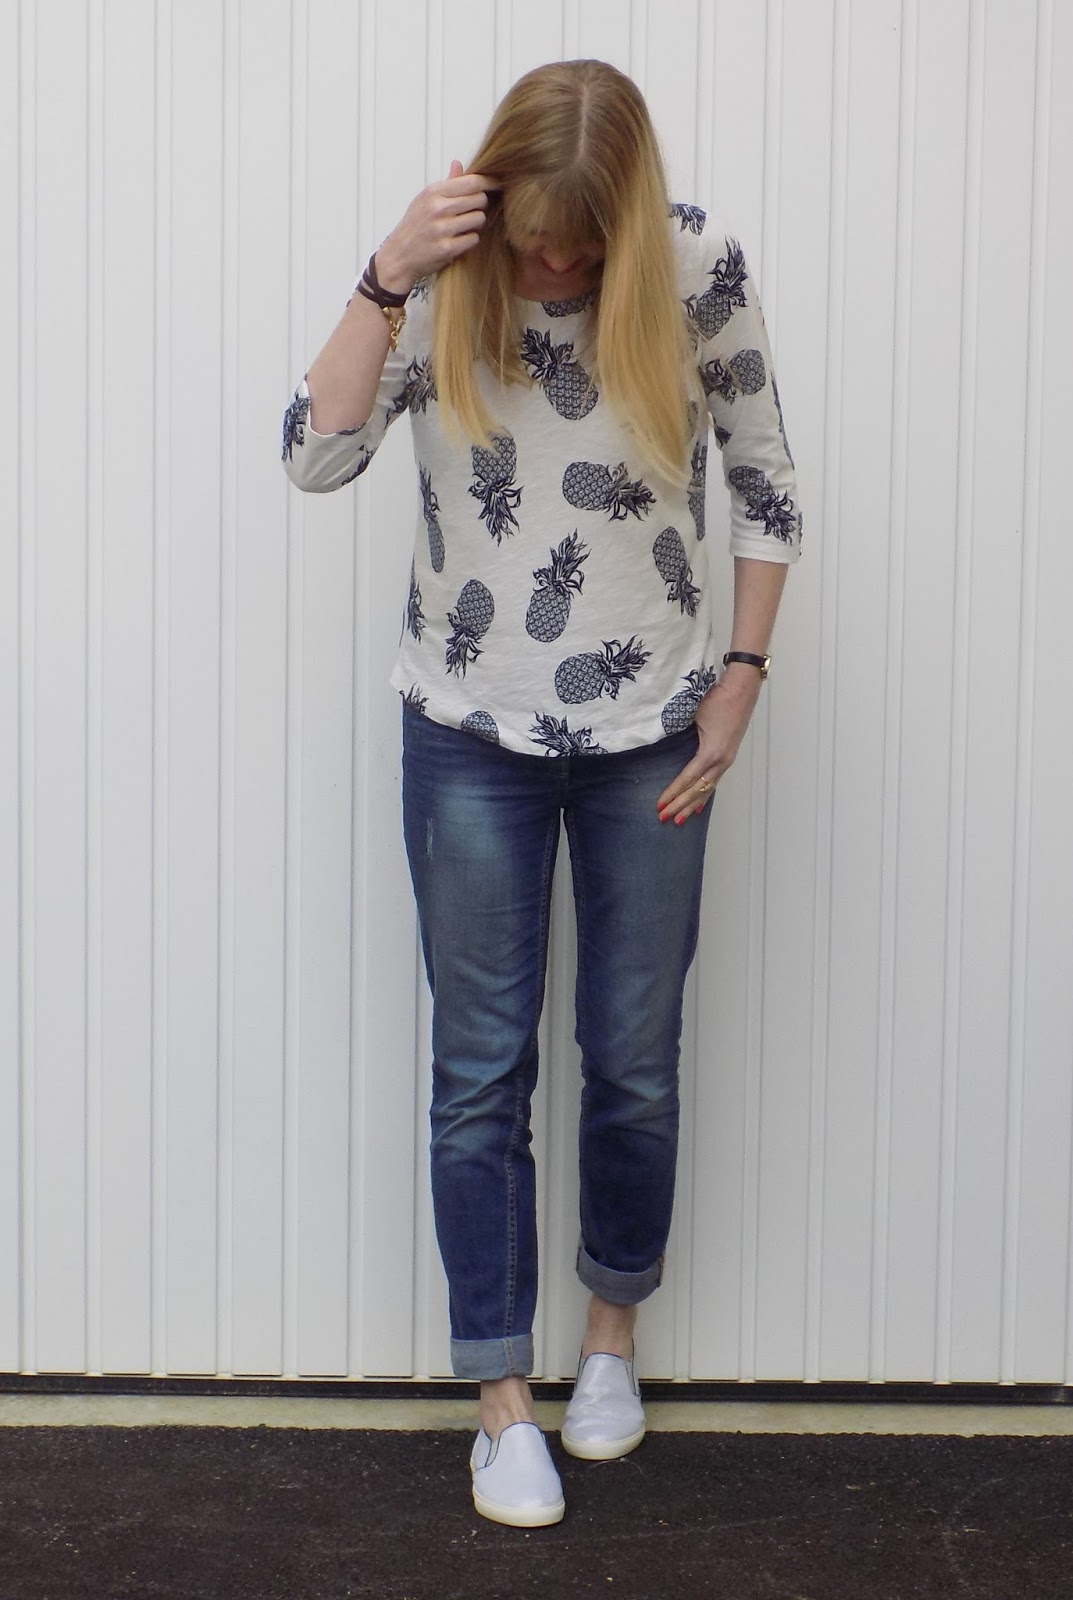 Pineapple top and boyfriend jeans